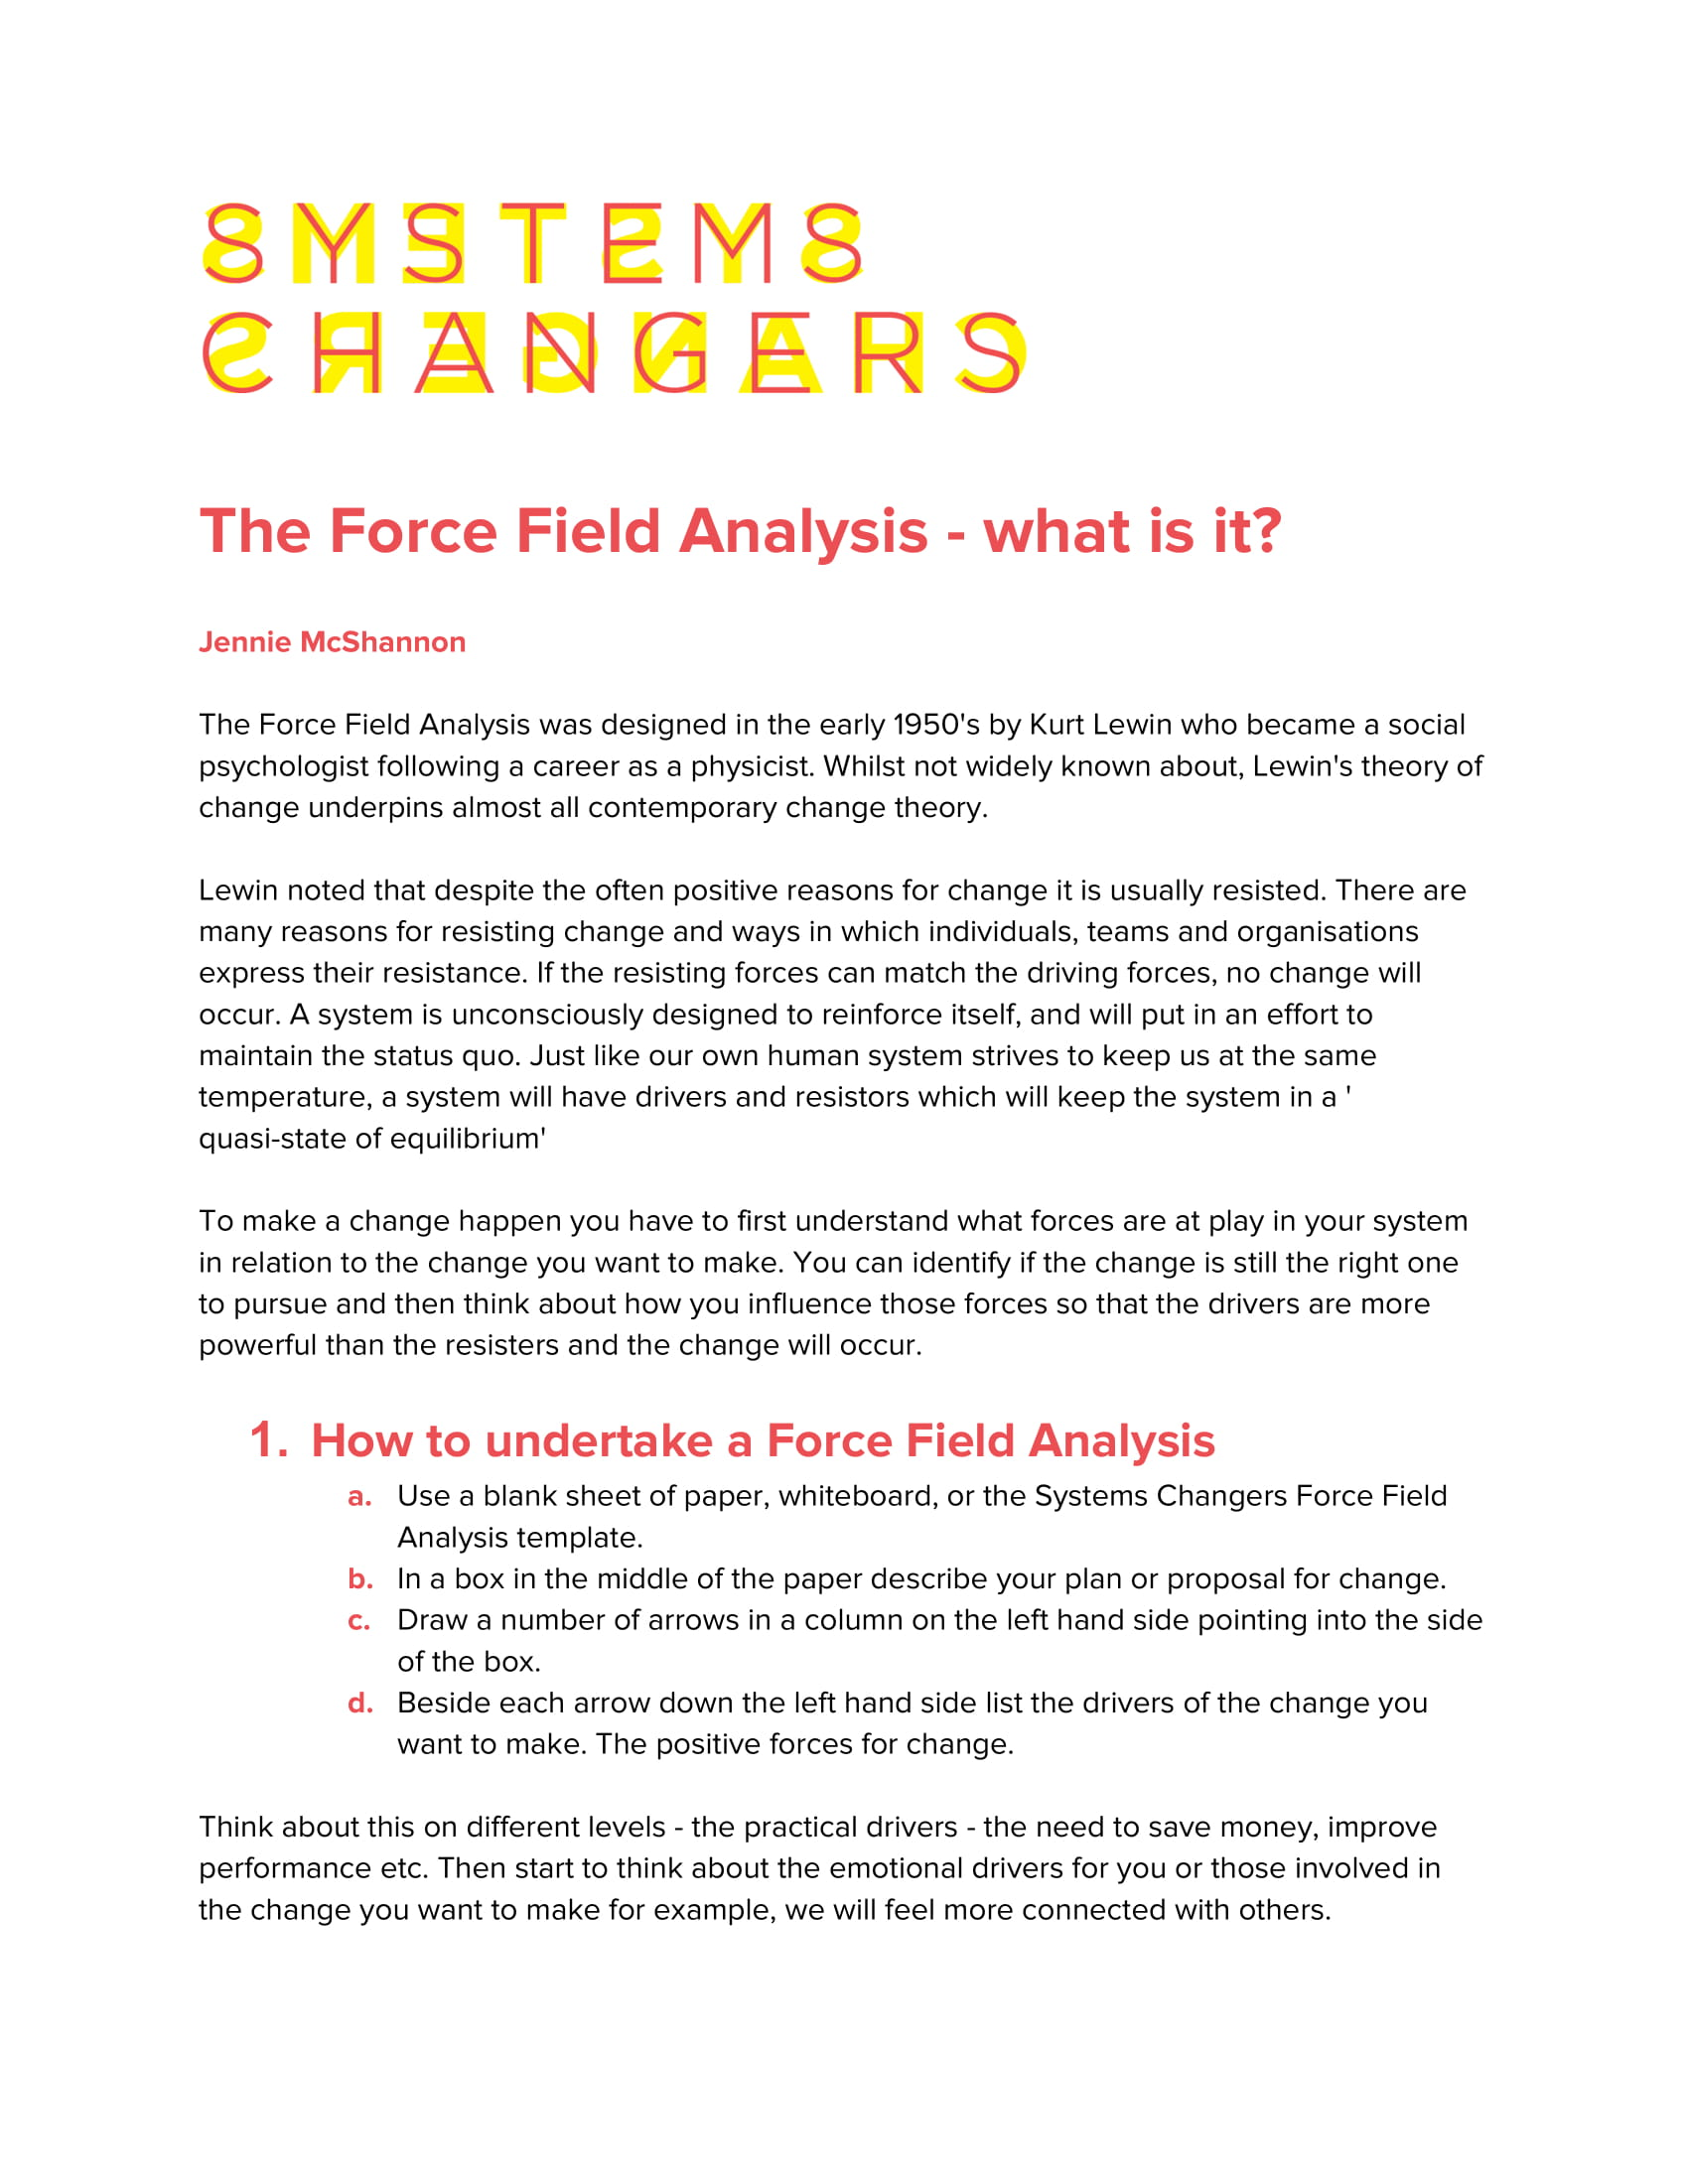 systems changers the force field analysis